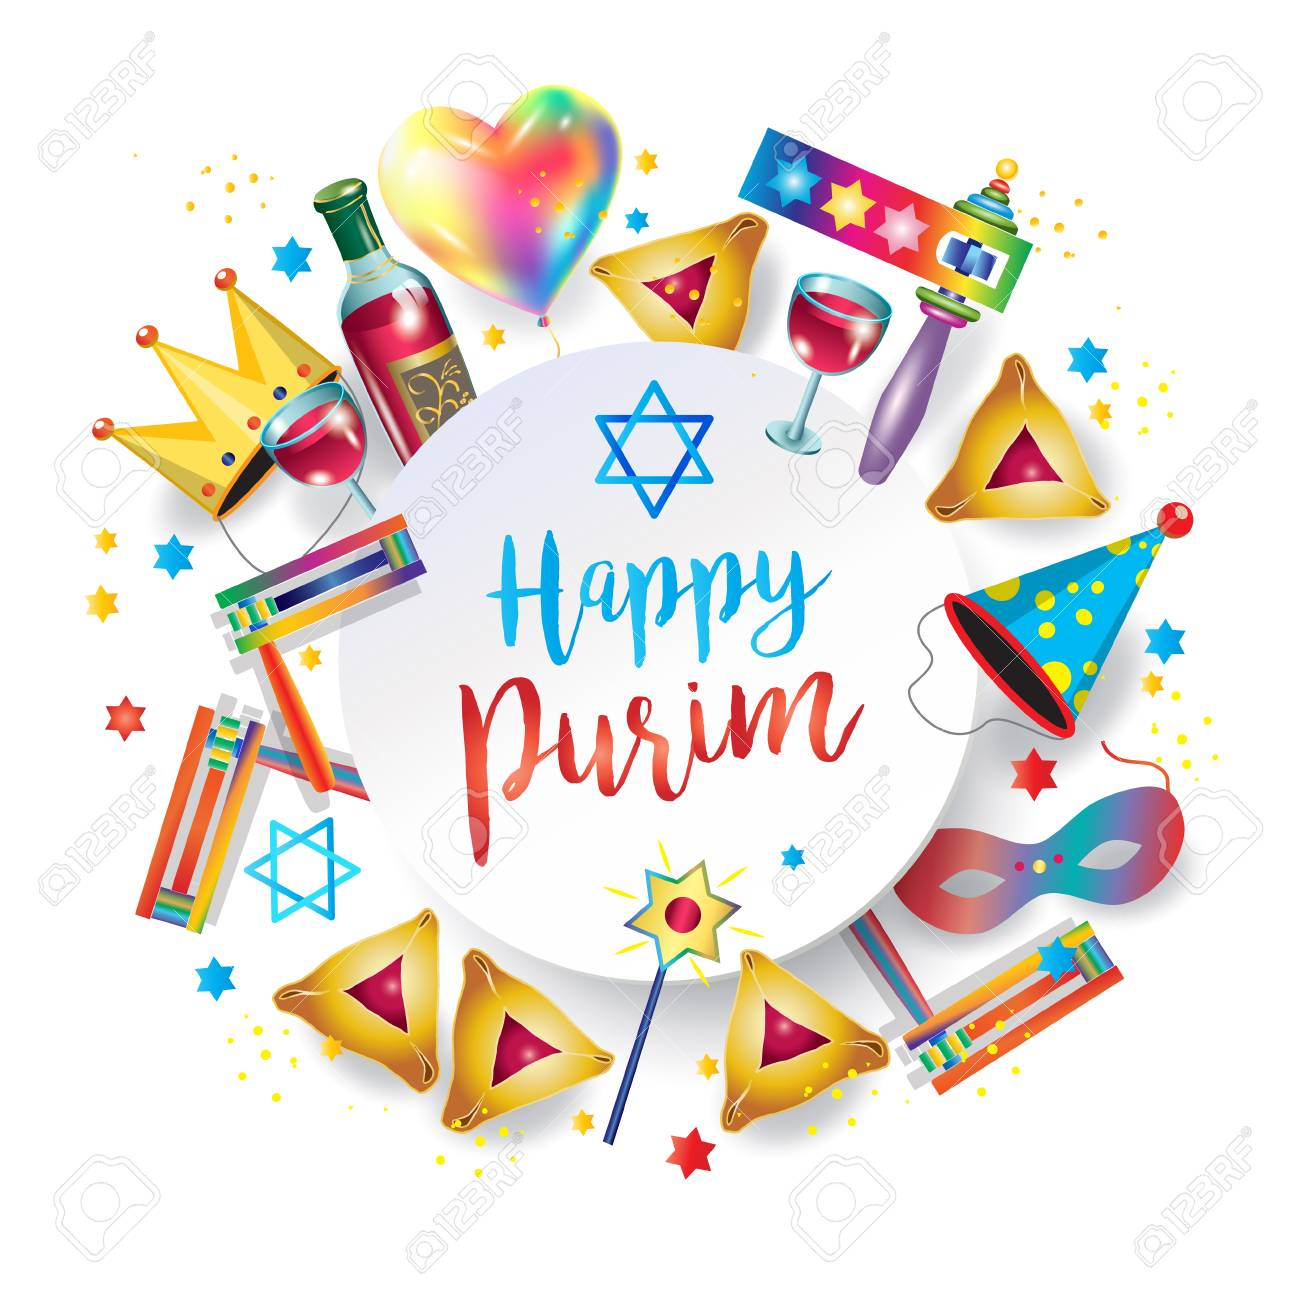 vector freeuse stock Purim clipart. Happy station